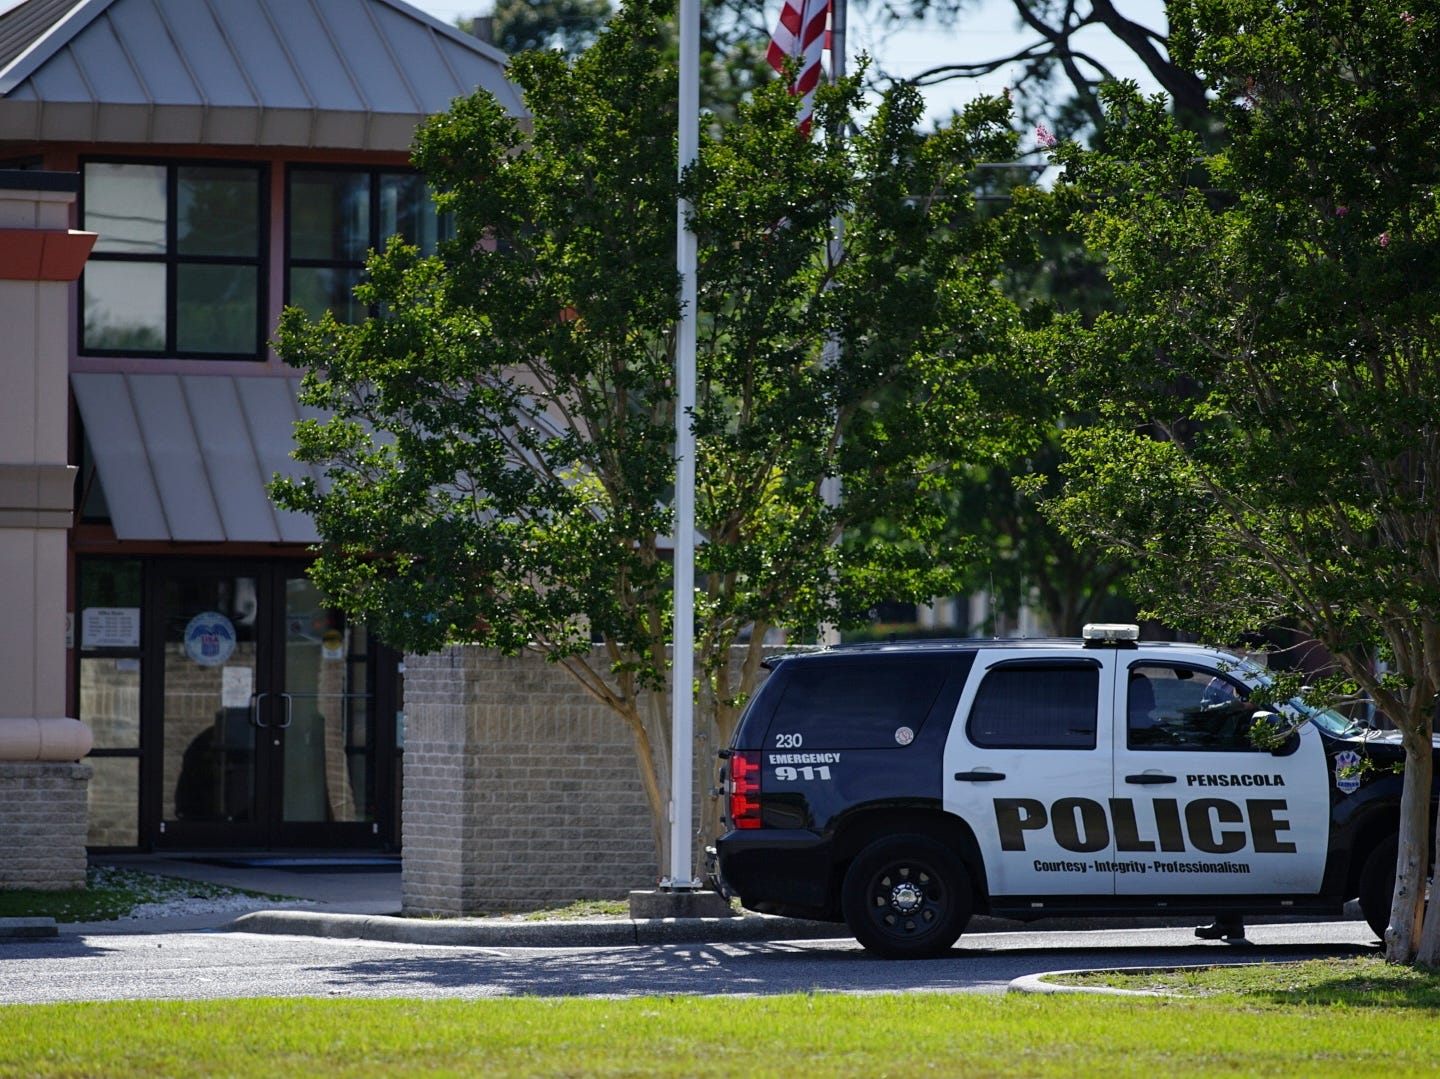 The Pensacola Police Department is investigating a bomb threat at the U.S. Social Security Administration offices at 411 W.Garden St.